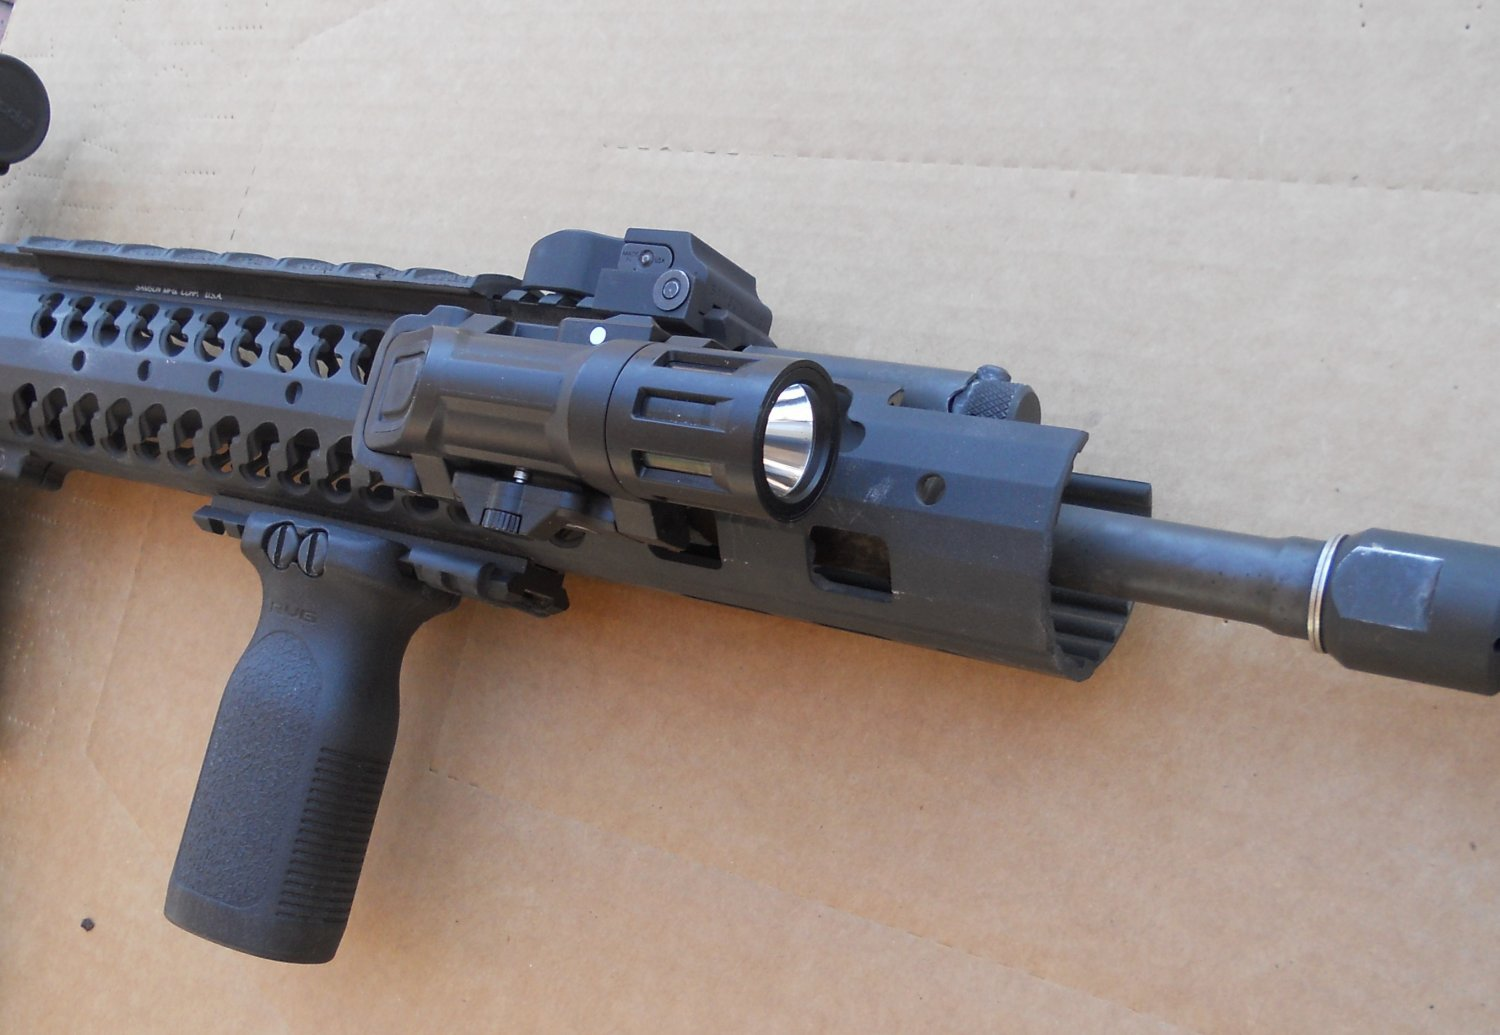 DR Range Report: INFORCE WML (Weapon Mounted Light) Tactical White Light/Infrared (IR) Illuminator: A Shooter's Report (Detailed Range Report with Photos and Video!)